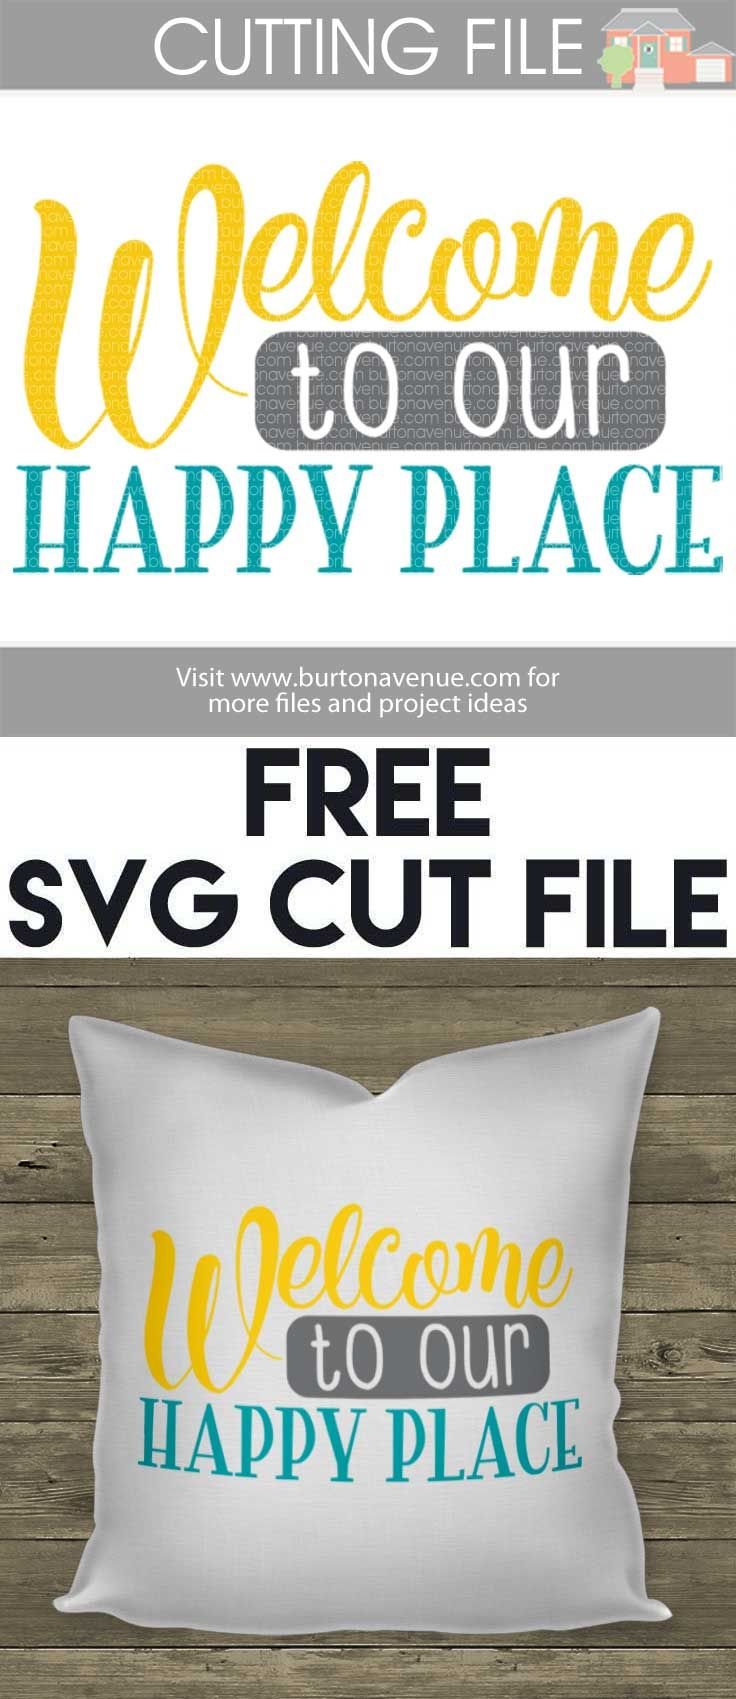 Free SVG Cut Files for Silhouette, Cricut, and more. - Available for FREE until 7/21/17